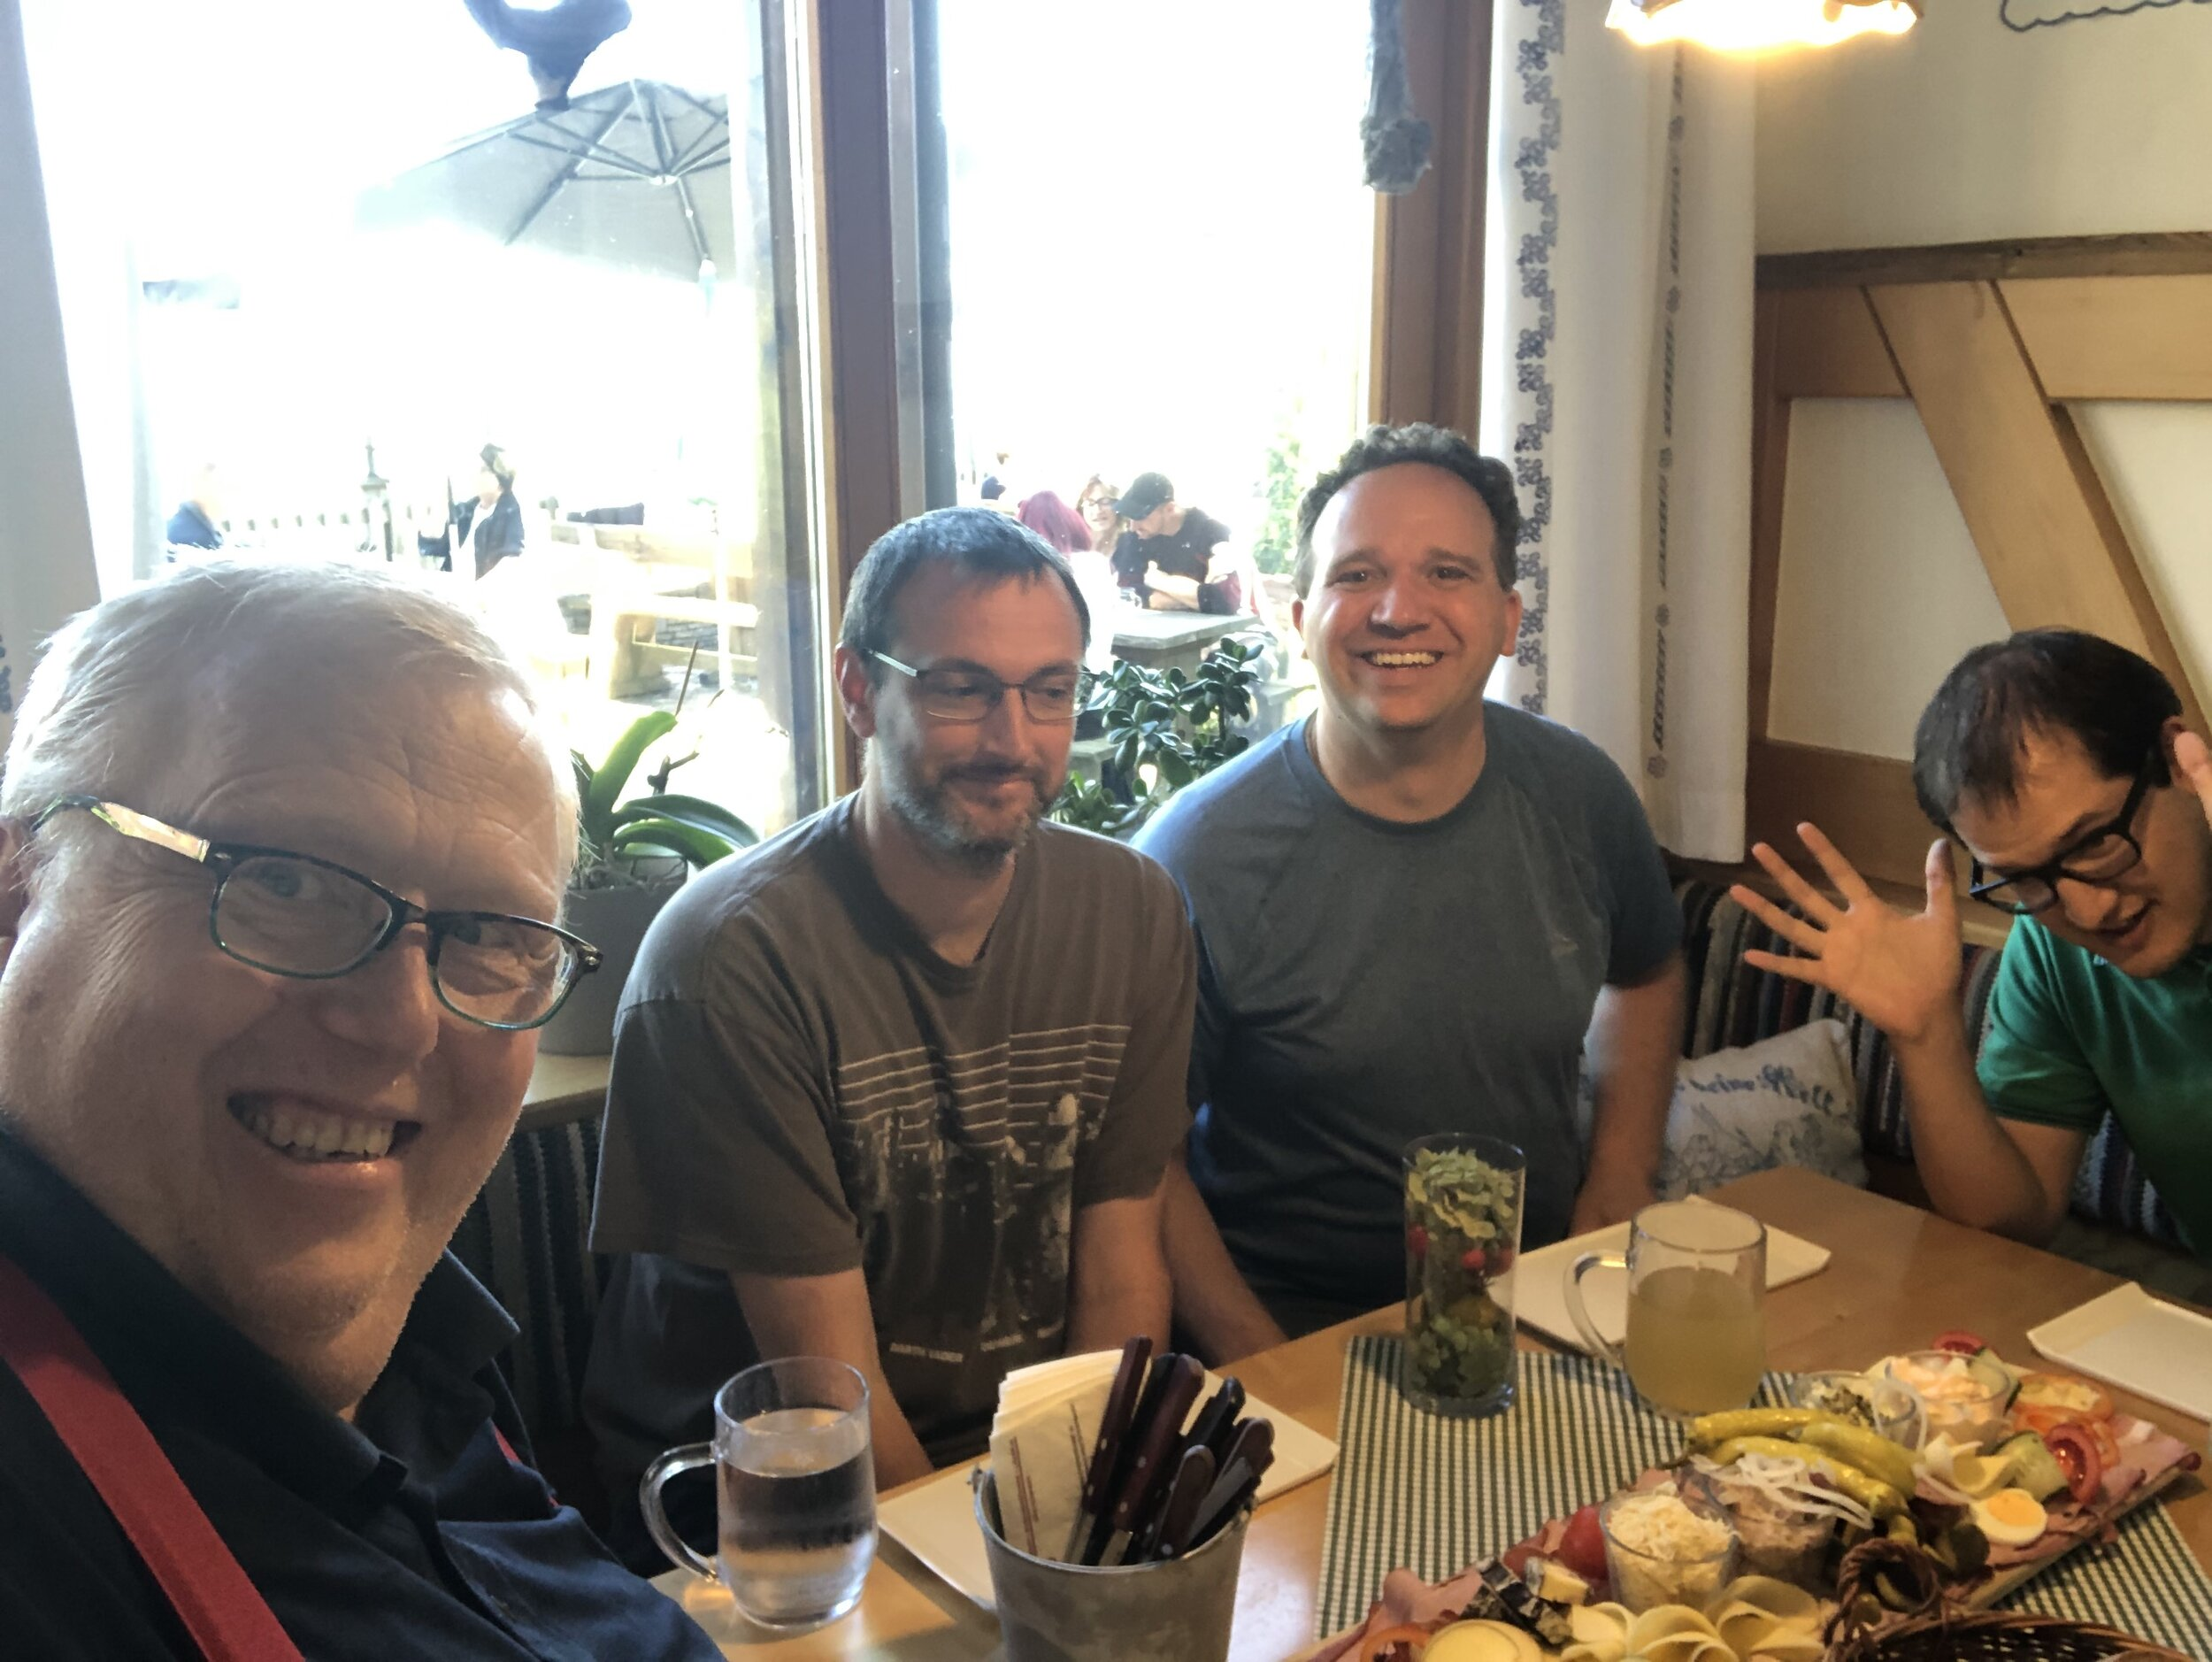 (L to R) Jeff, Stan, Andrew, and Ryan enjoying a delicious lunch in the hills above Graz